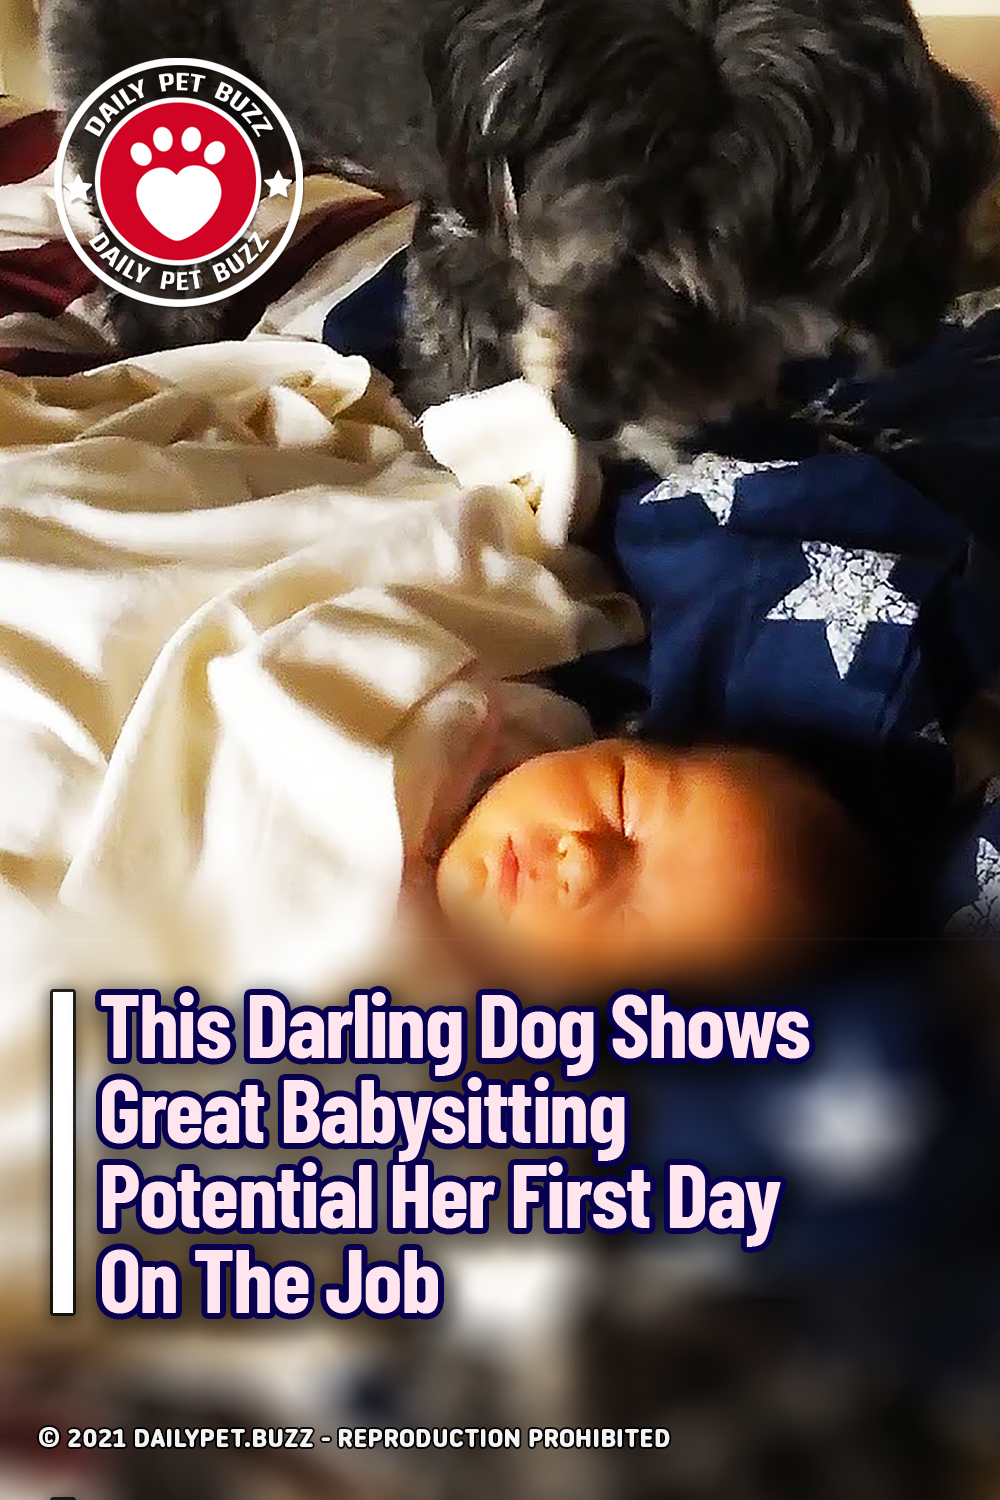 This Darling Dog Shows Great Babysitting Potential Her First Day On The Job